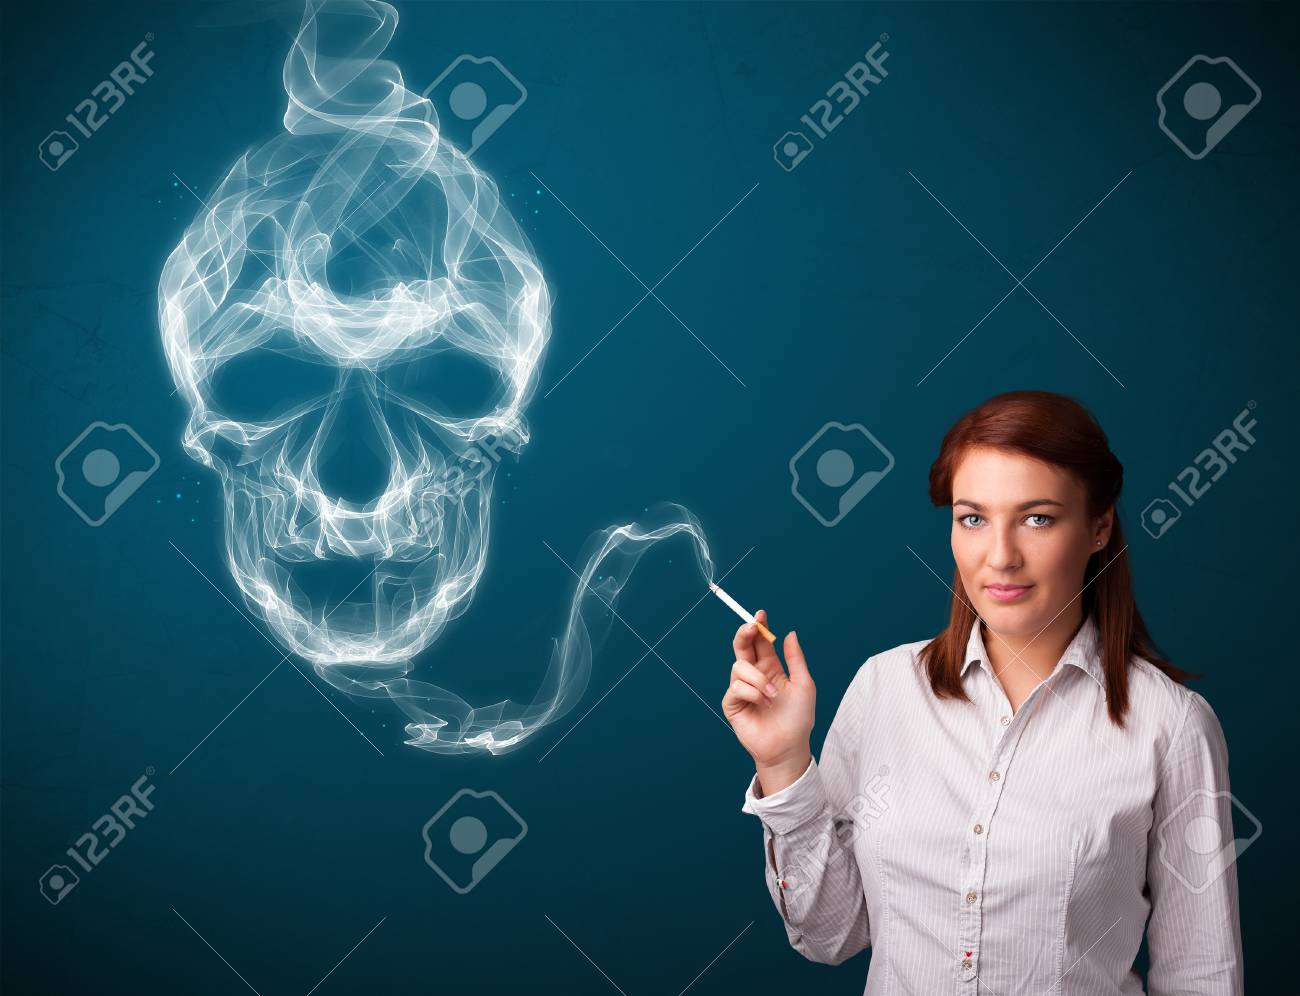 Pretty young woman smoking dangerous cigarette with toxic skull smoke Stock Photo - 16746851